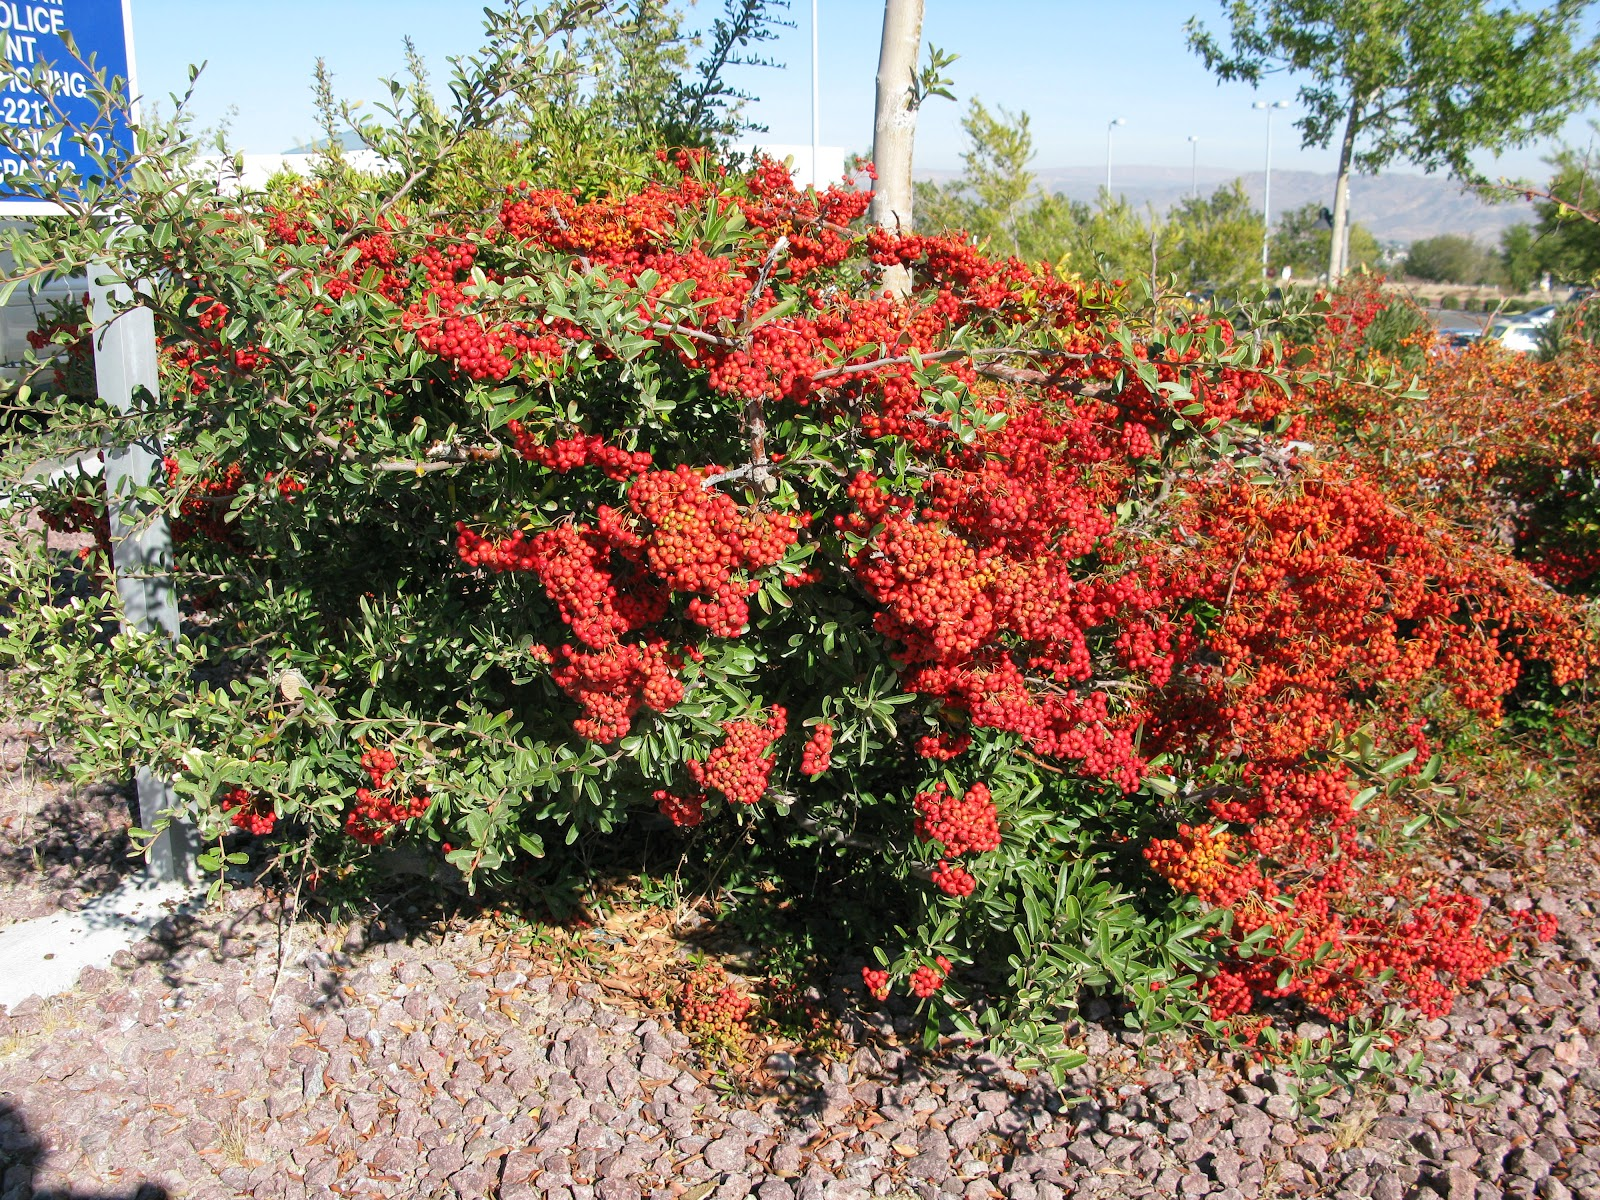 Roadrunners And Figgy Pudding Whatz That Barstow Evergreen Shrubs